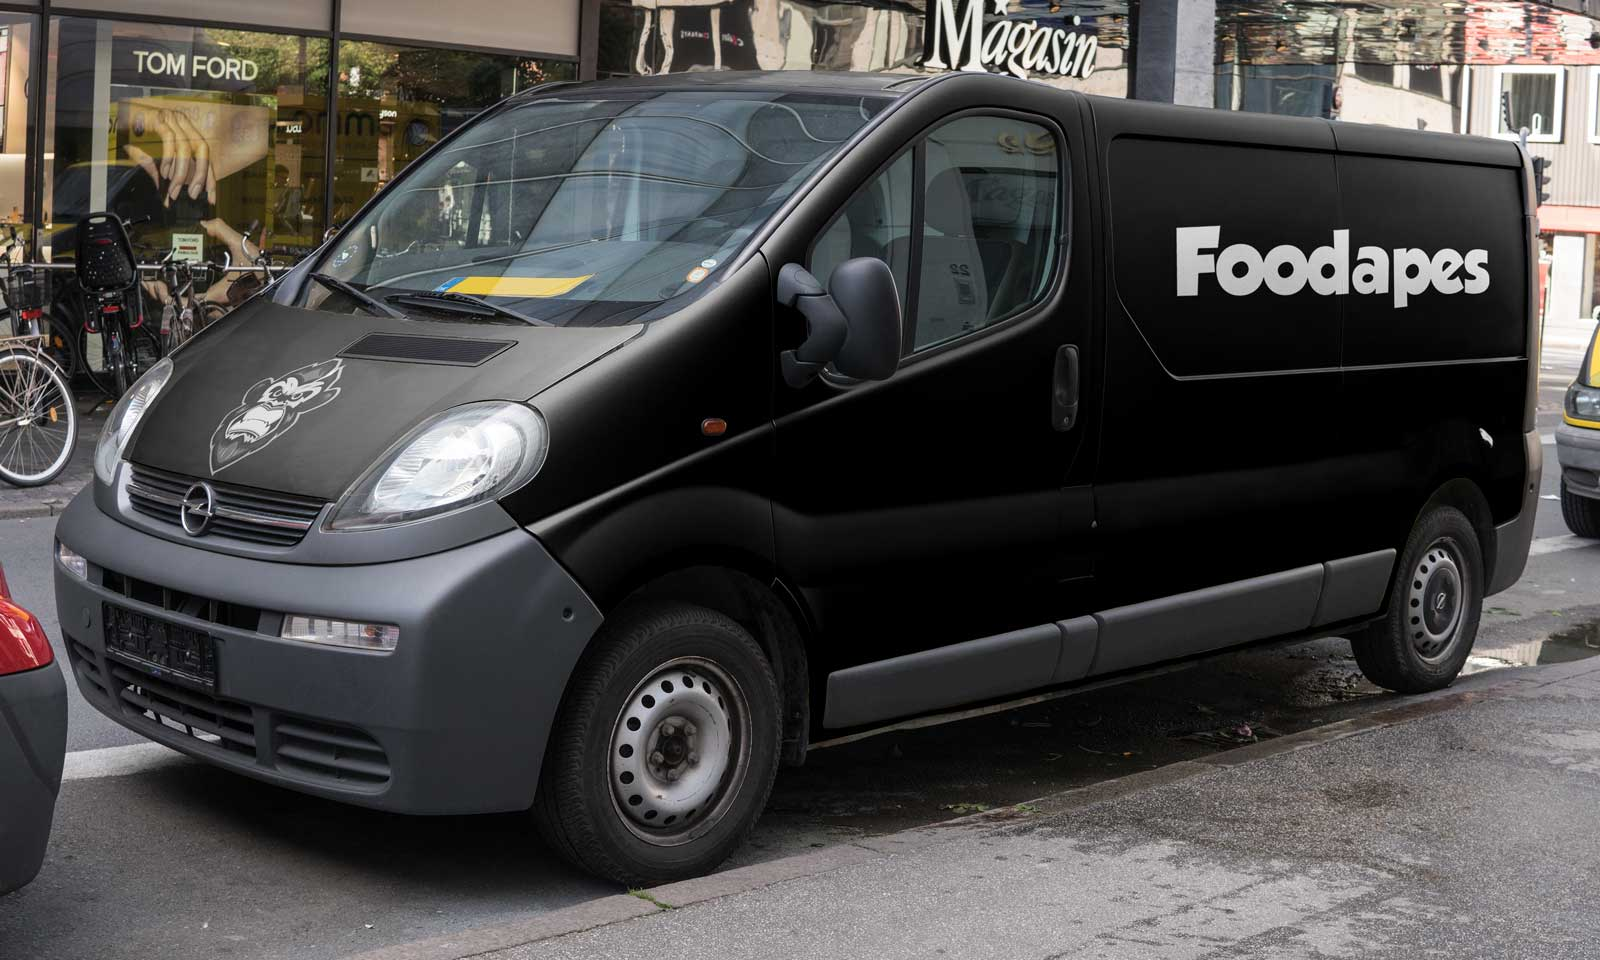 Foodapes-Delivery-Truck